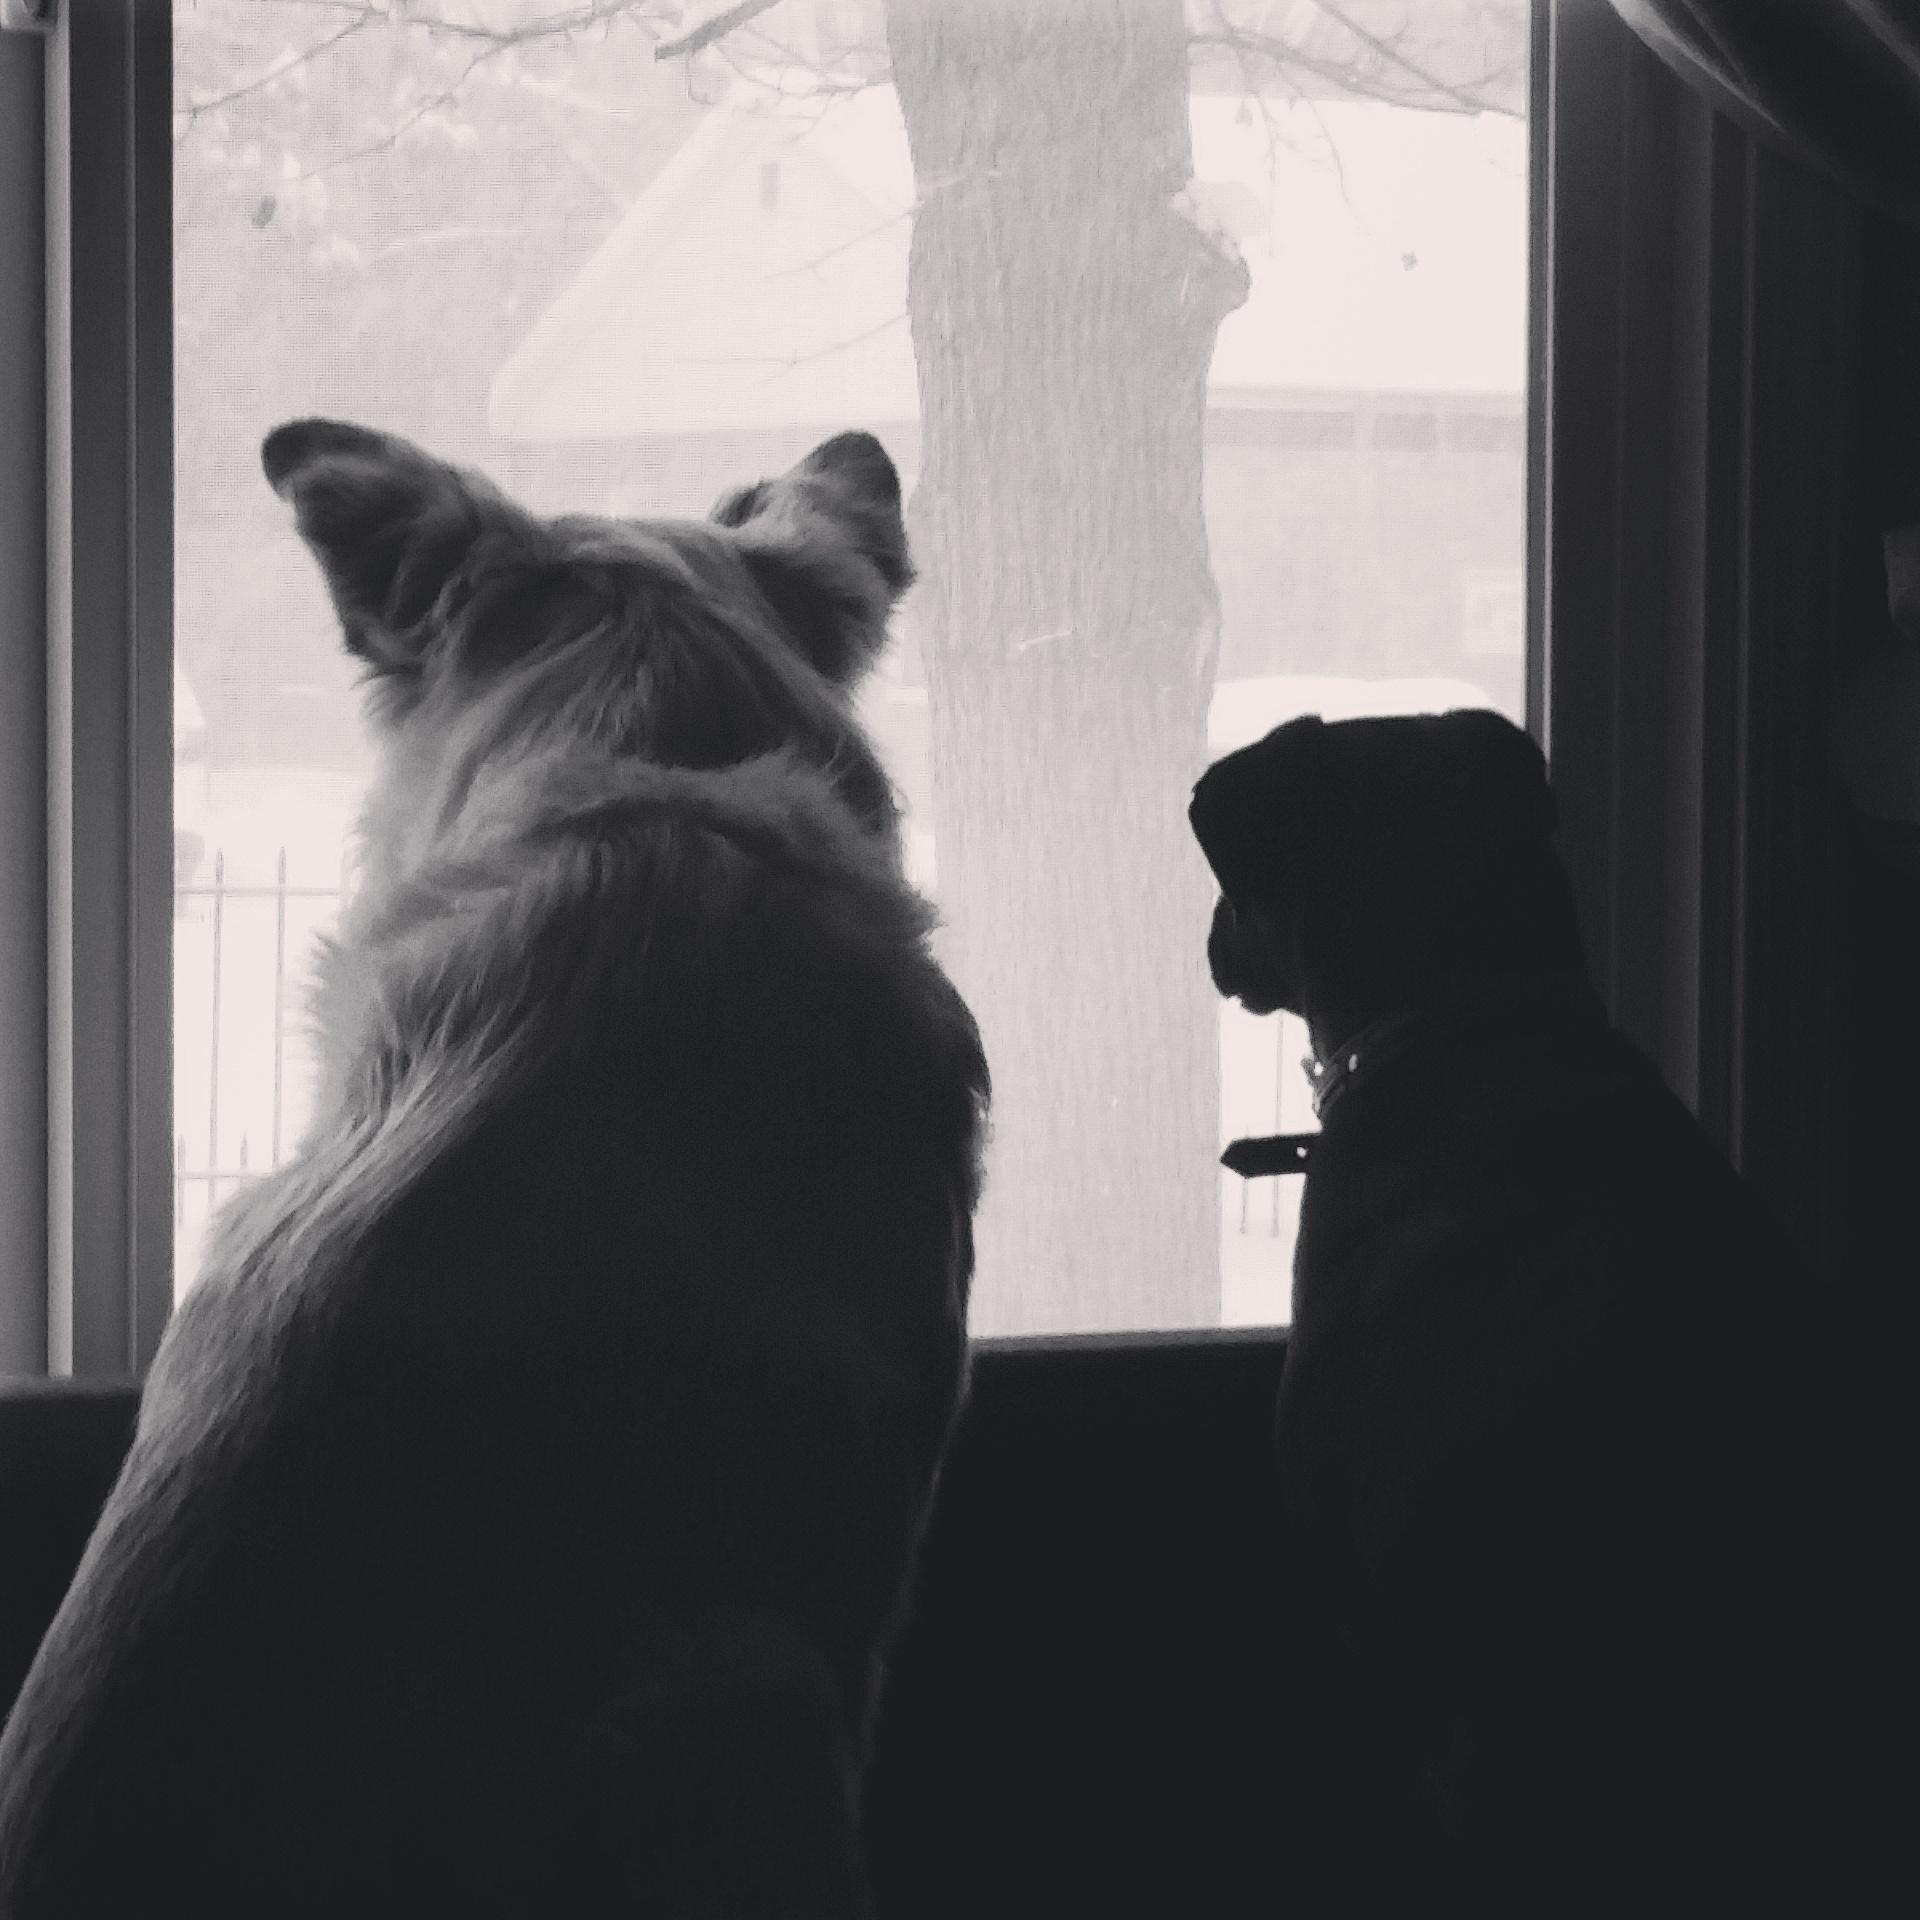 Odie and Oz looking out the window.